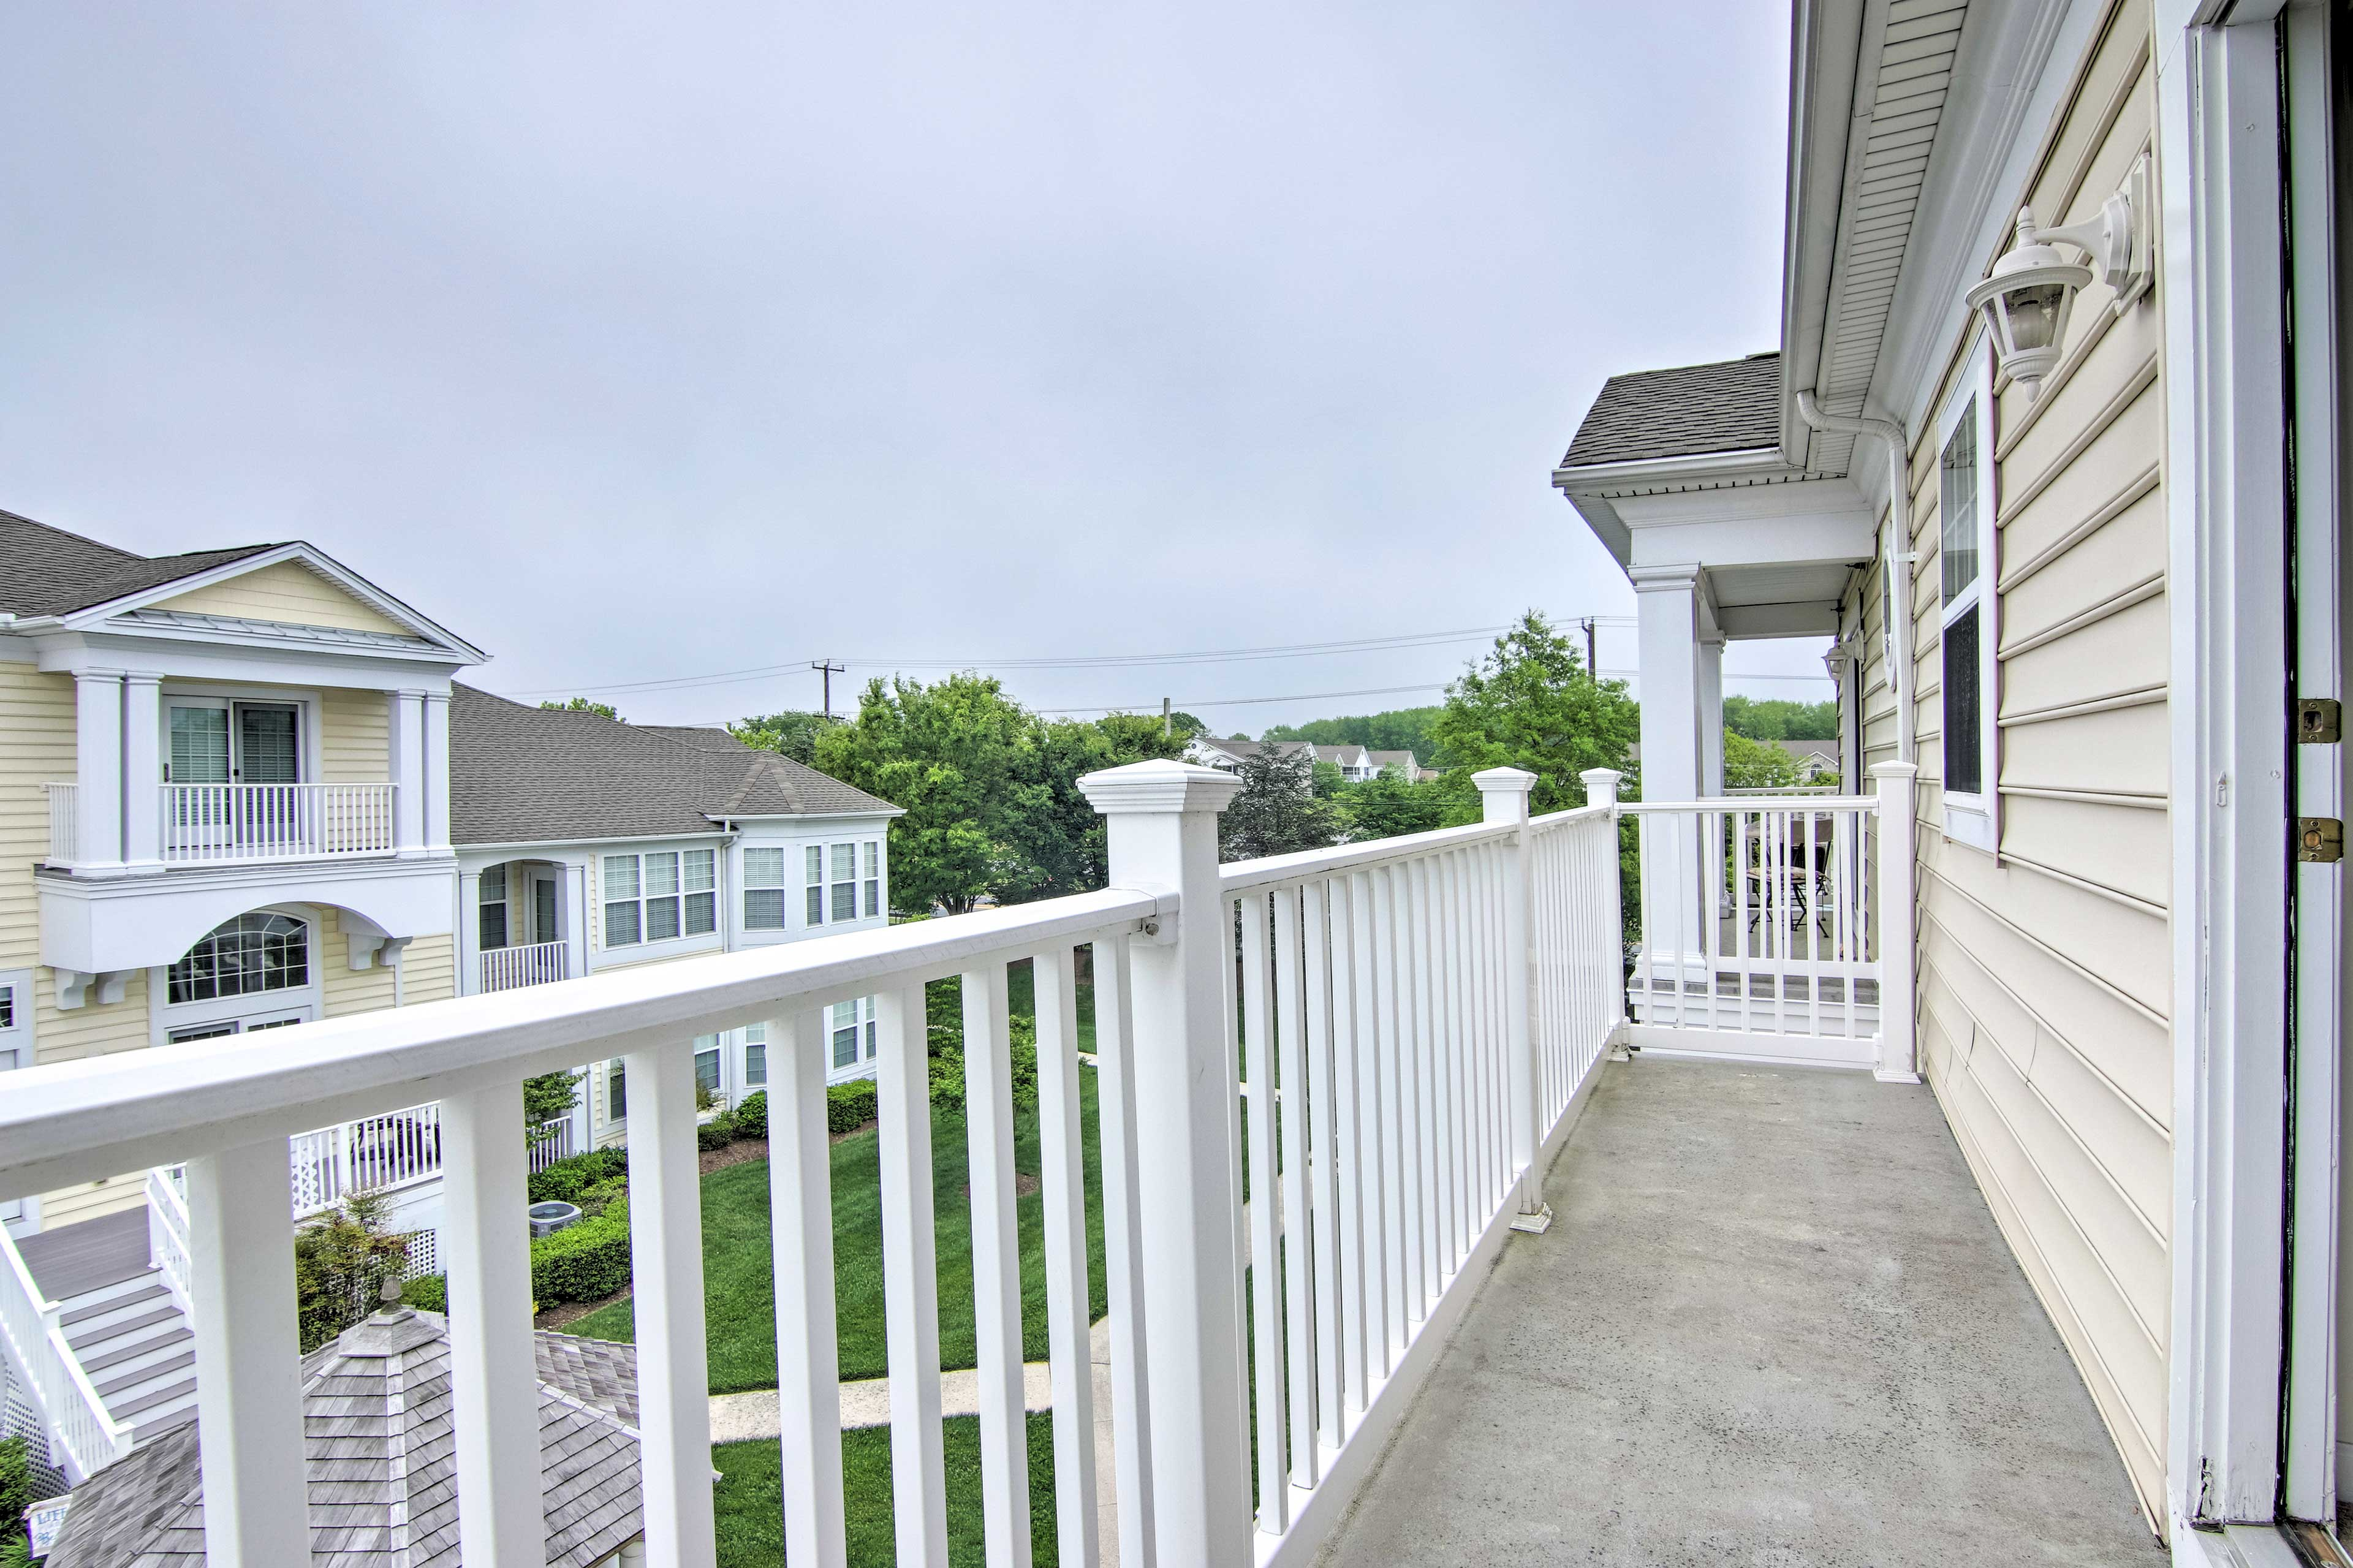 Take in the neighborhood from the home's balcony.